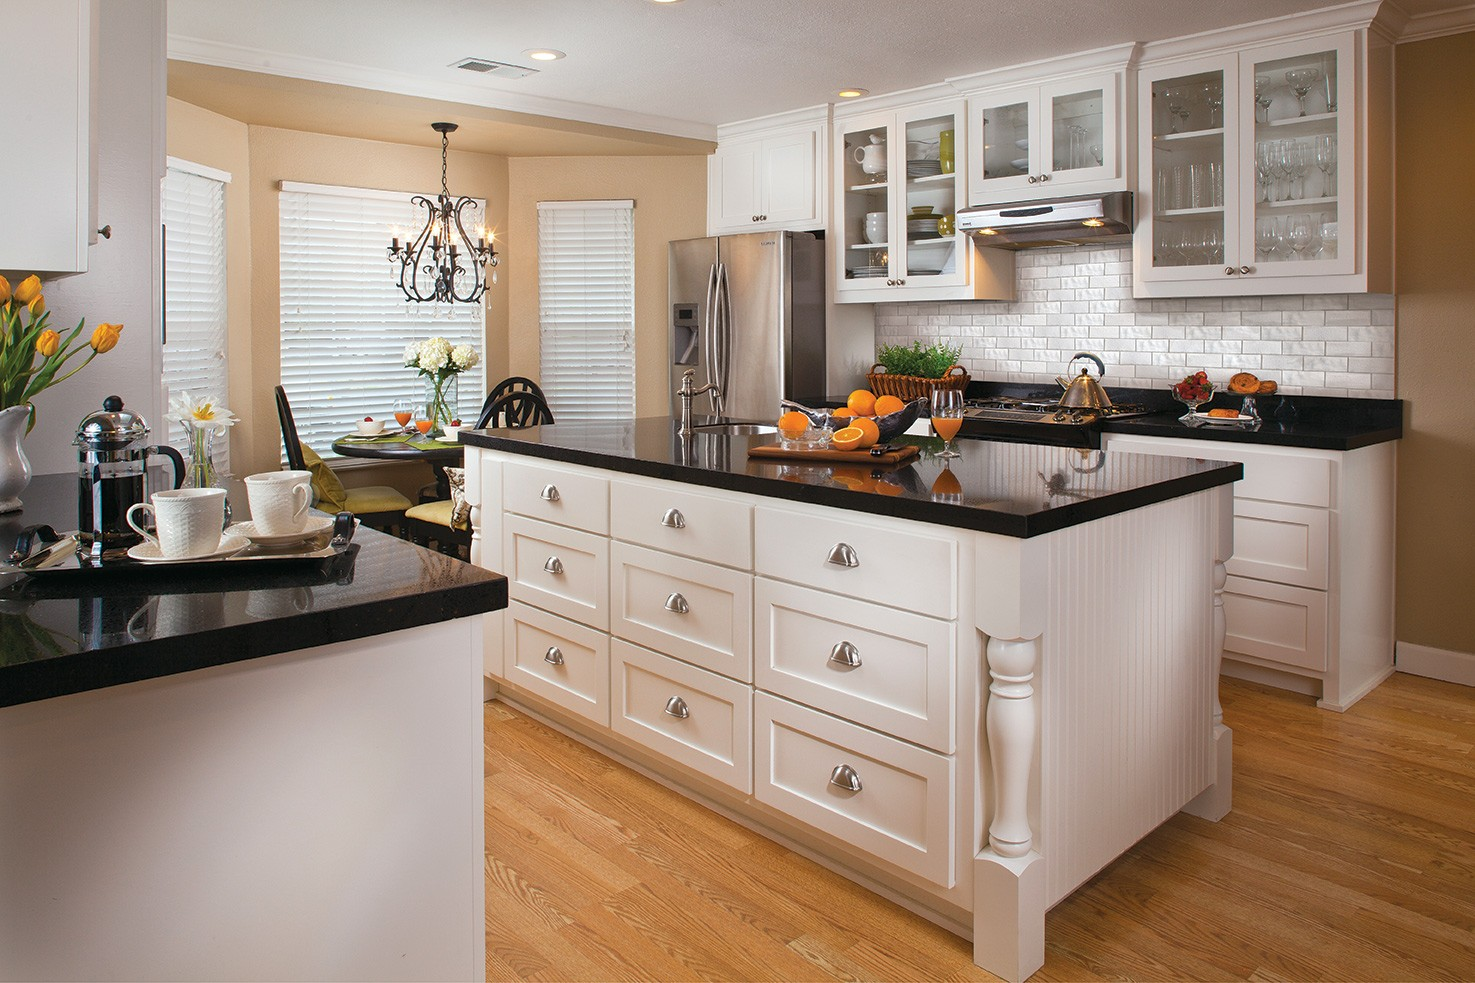 Black and White Kitchen Design Ideas | Granite ... on black and white wedding reception ideas, black and white printable periodic table, black and white traditional kitchens, black kitchen design, black and white kitchens hgtv, high gloss black kitchen ideas, black and white tattoo ideas, black and white galley kitchens, black luxury kitchen, black backsplash ideas, black kitchen cabinets ideas, black kitchen island, black and off white kitchens, black and white painting ideas, before and after kitchen ideas, black white red kitchen, black and white stuff, black and white nail ideas, black and white kitchens with yellow accents, black kitchen sink ideas,